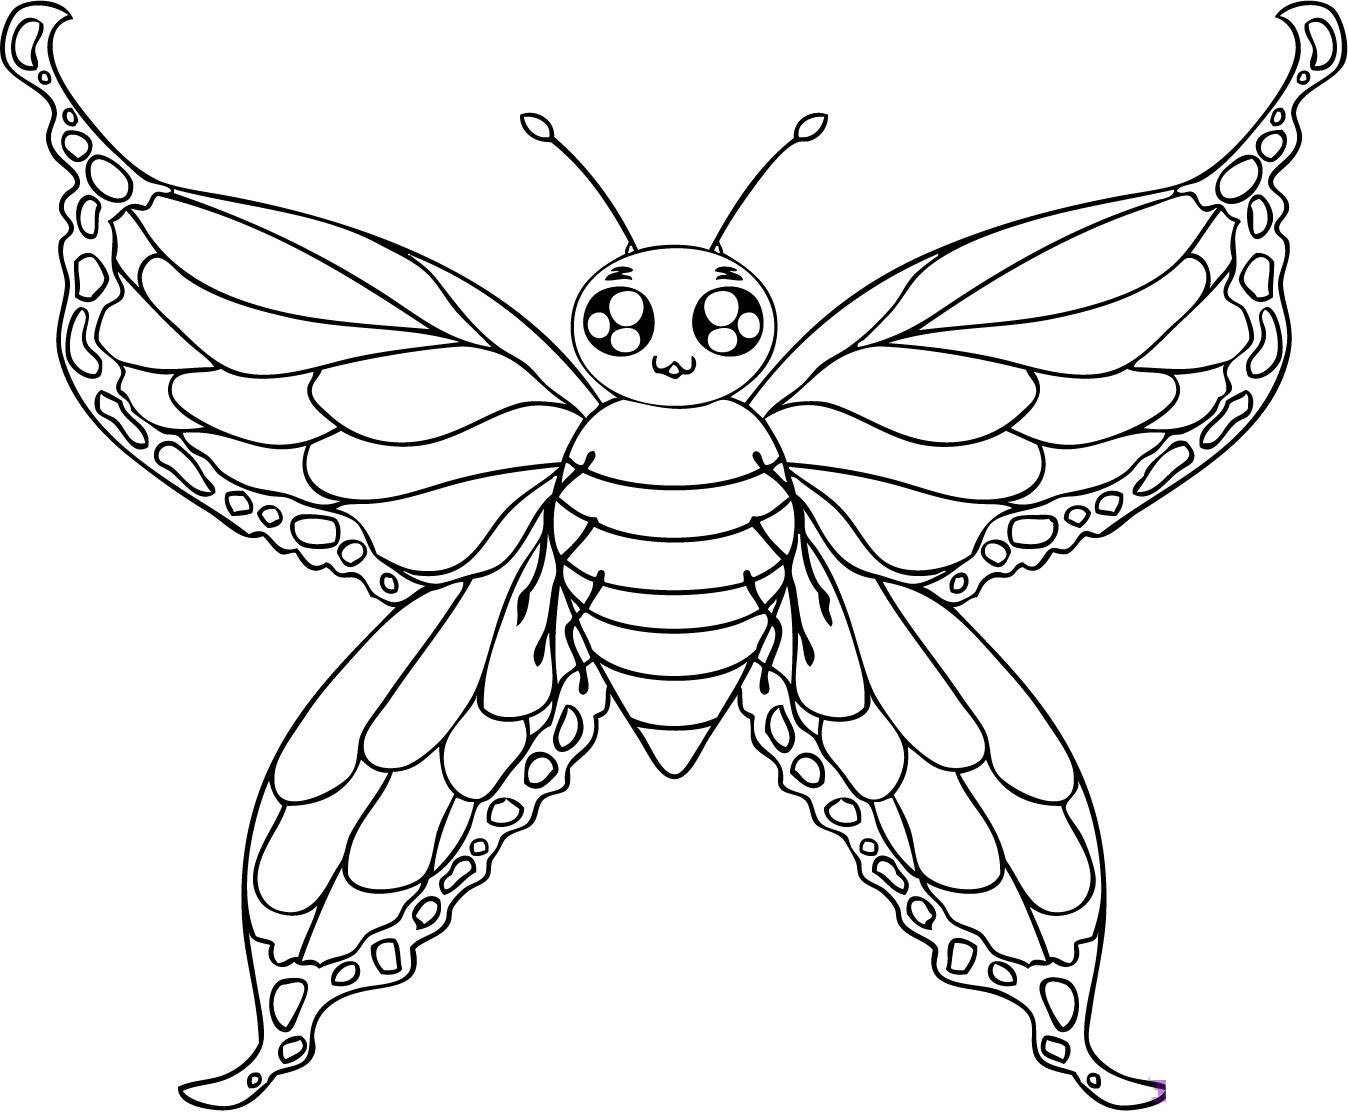 butterfly coloring pages for kids to print - Printable Butterfly Coloring Pages